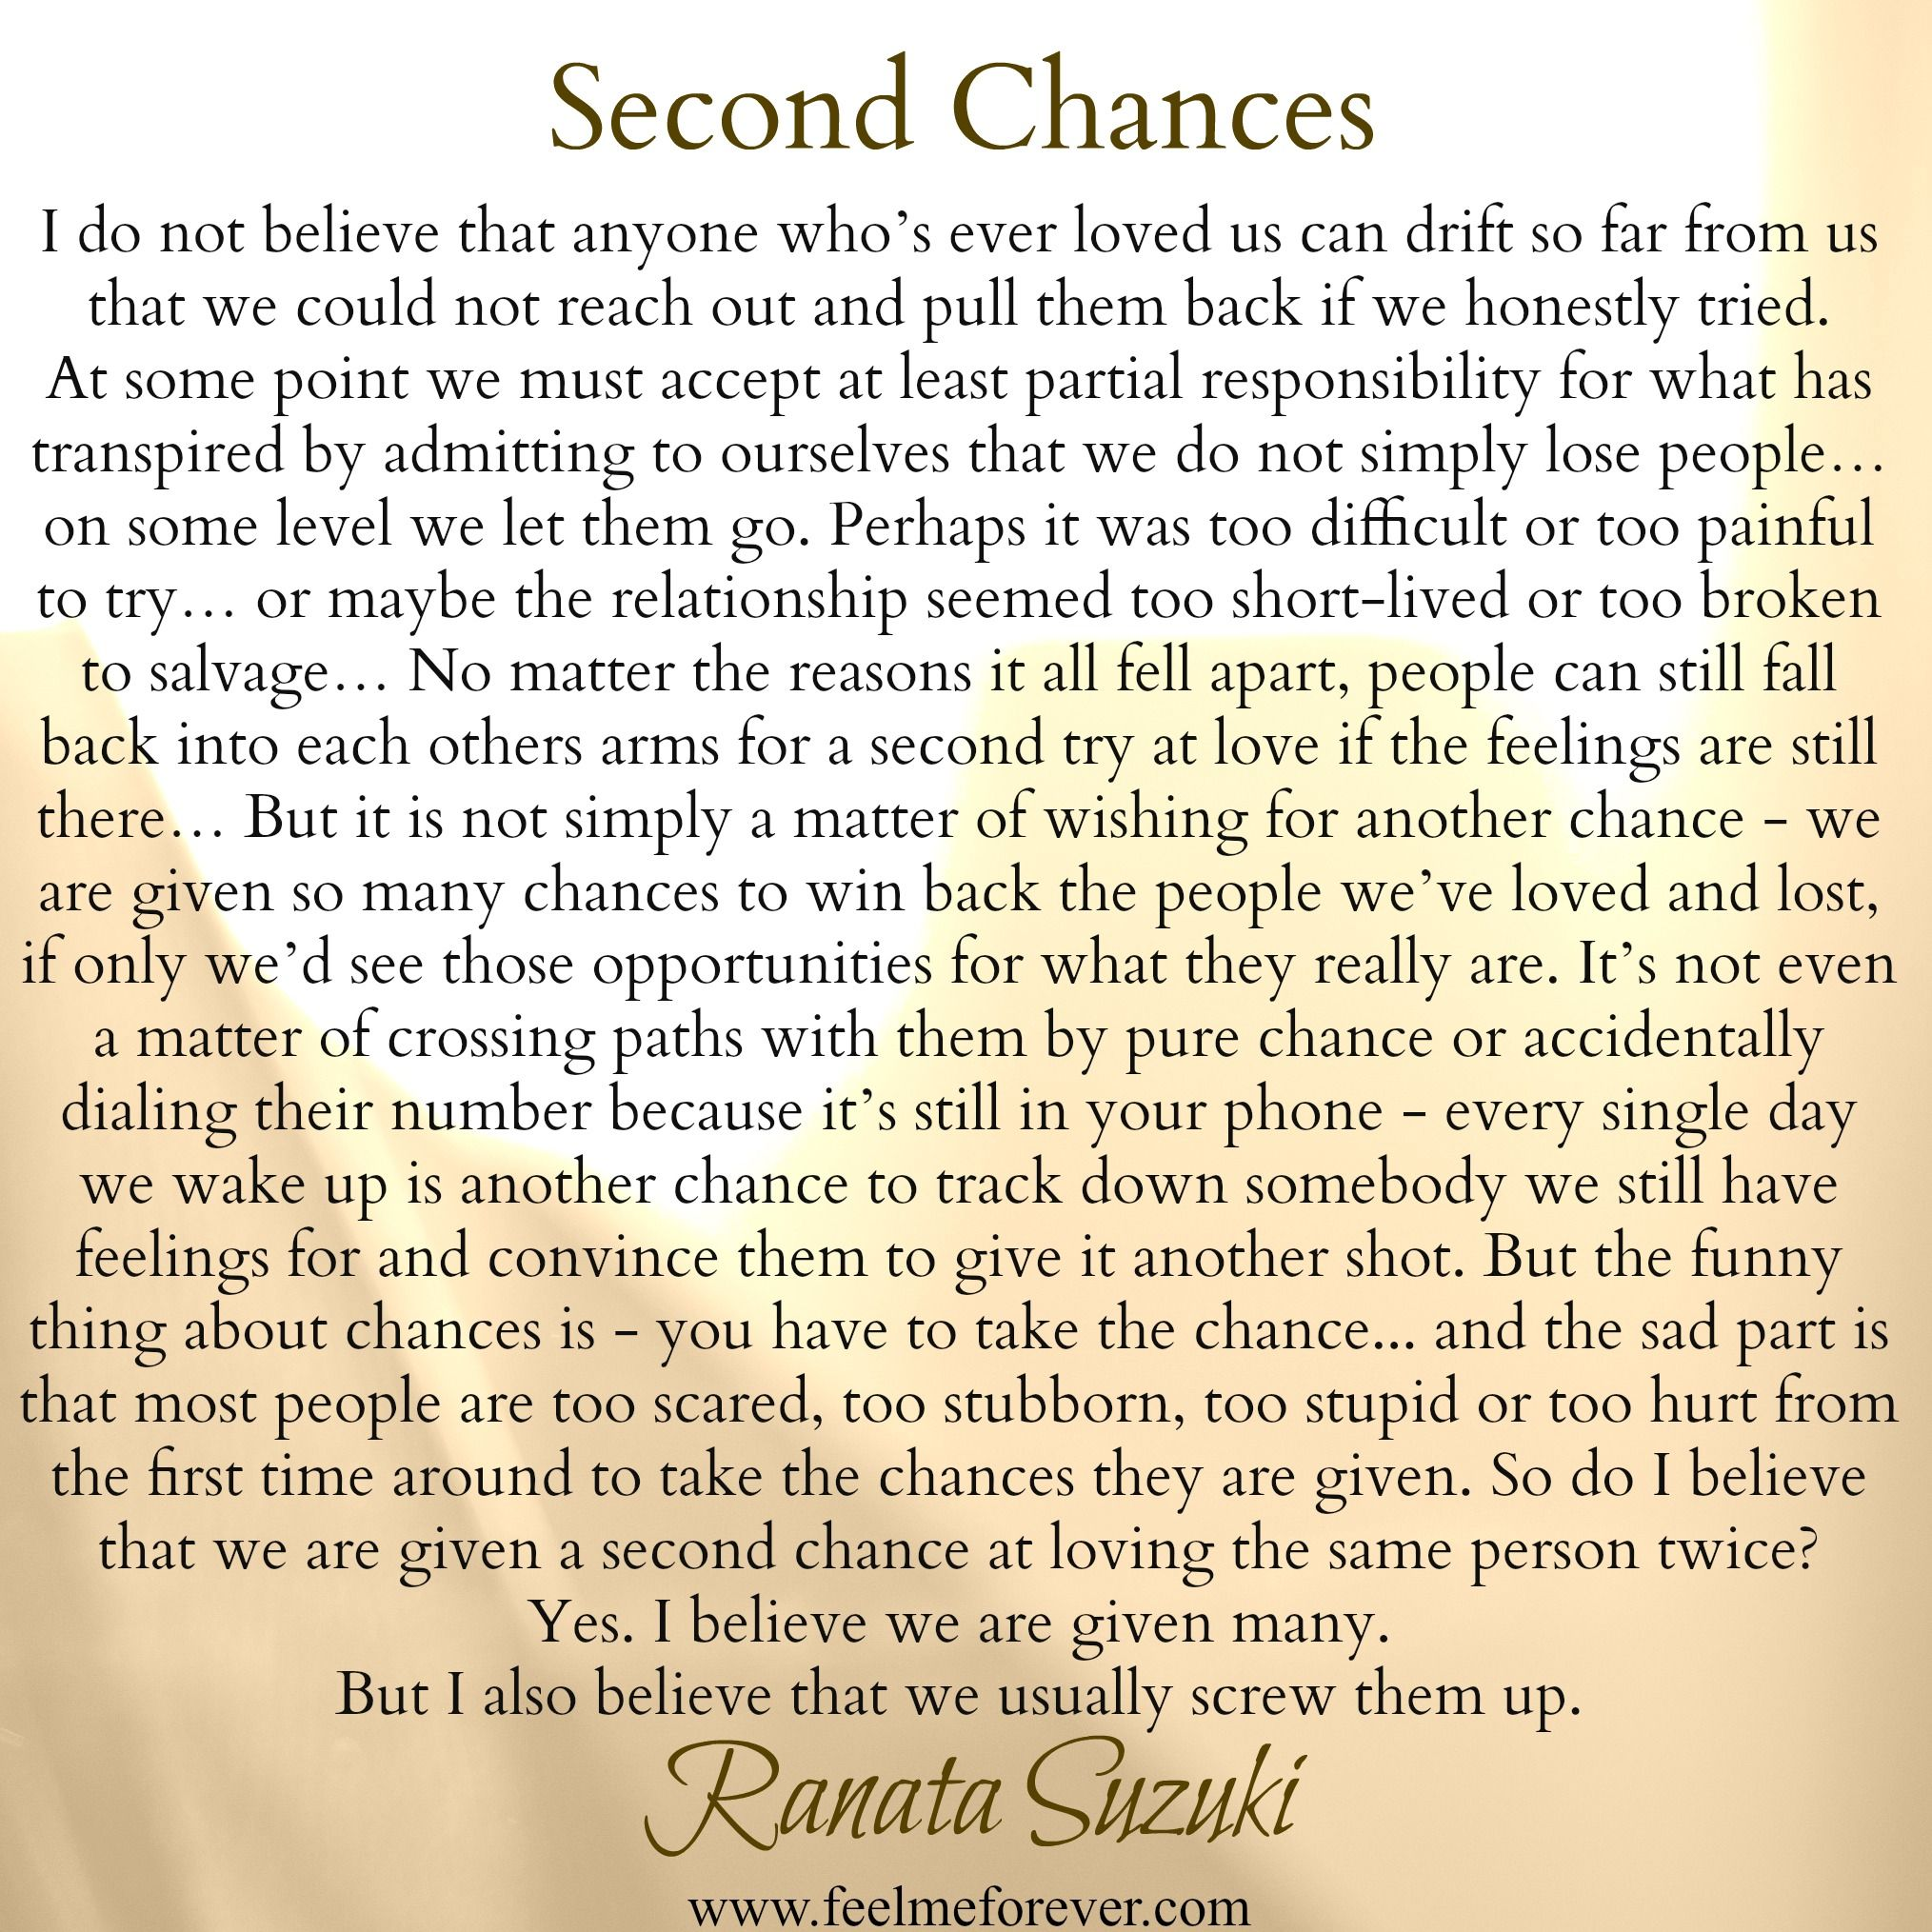 Every Single Day We Wake Up Is Another Chance To Track Down Somebody We Still Have Feelings For And C Chance Quotes Another Chance Quotes Second Chance Quotes